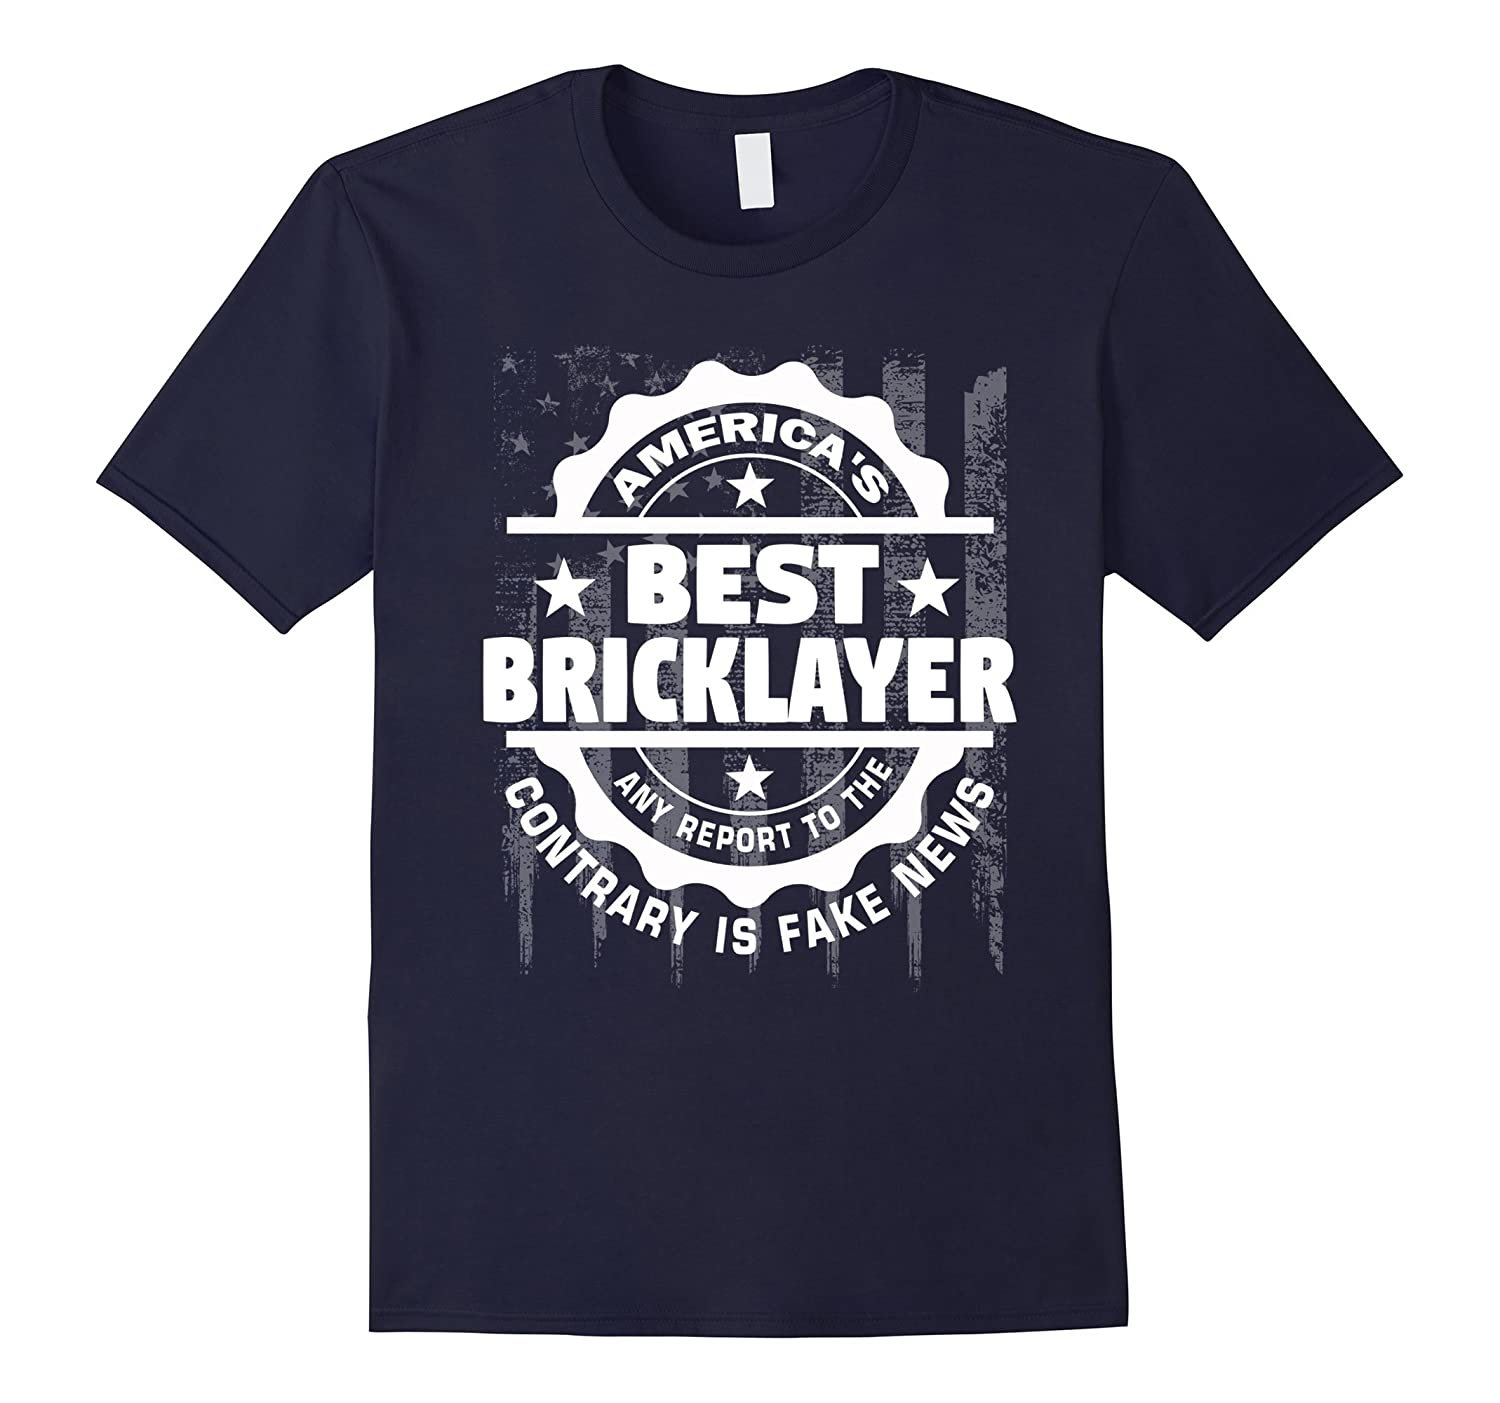 Bricklayer Shirt - Americas Best Bricklayer Funny t-shirt-TD